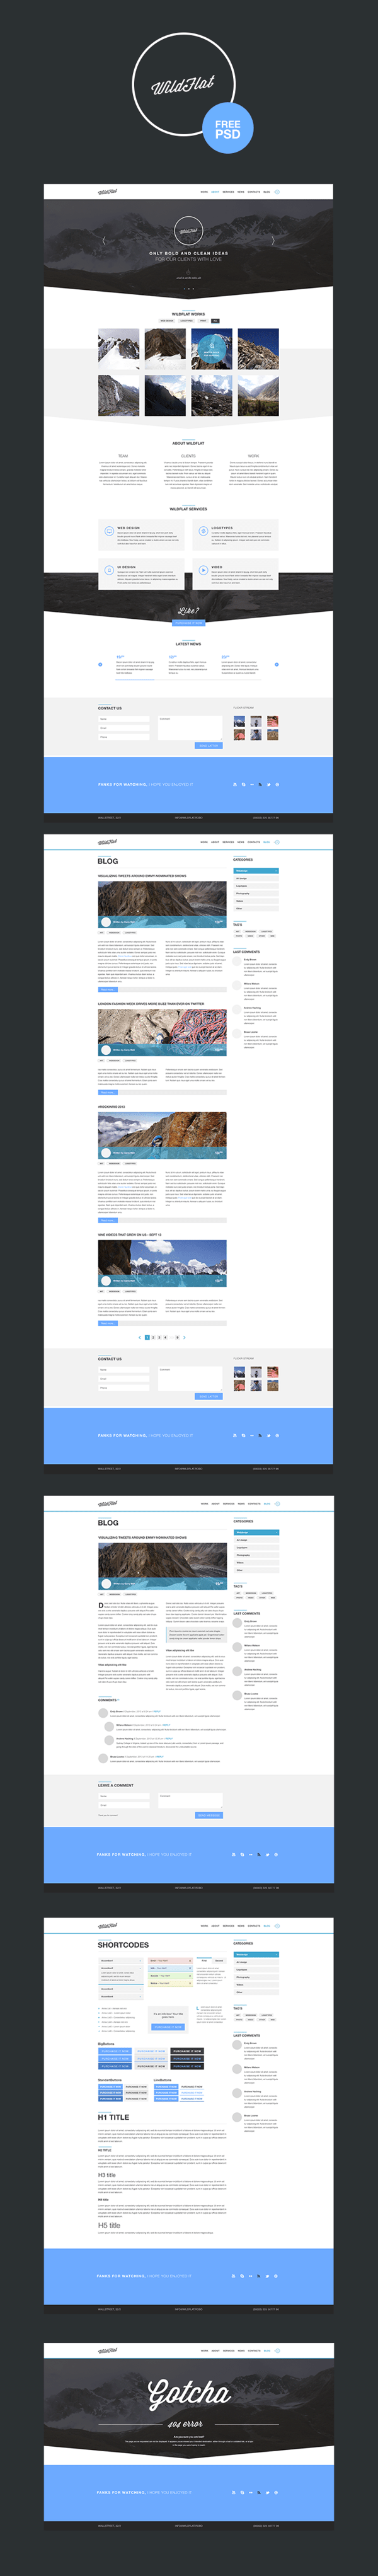 WildFlat - Free Psd Template